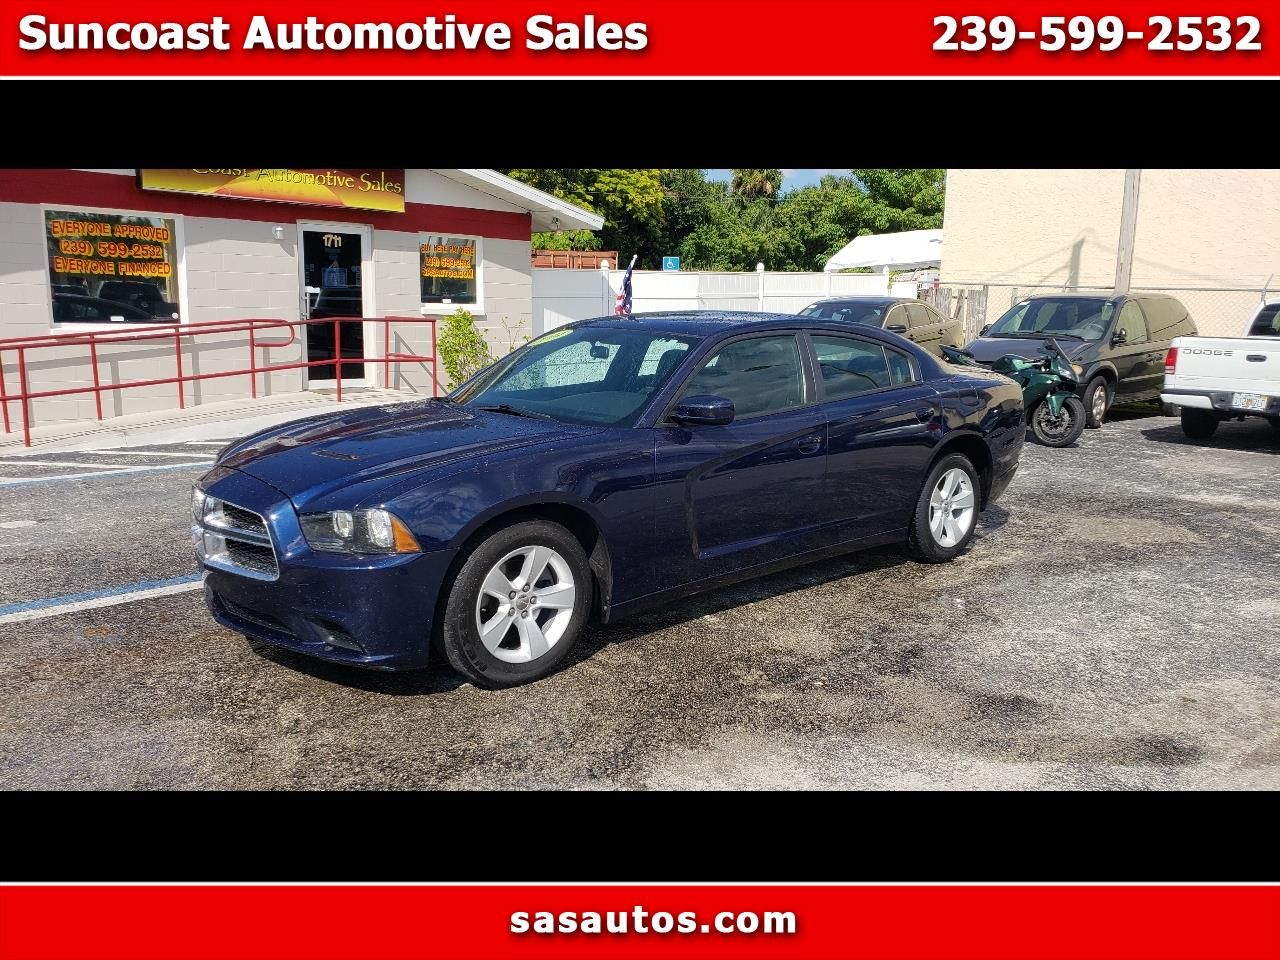 2014 Dodge Charger 4dr Sdn SE RWD